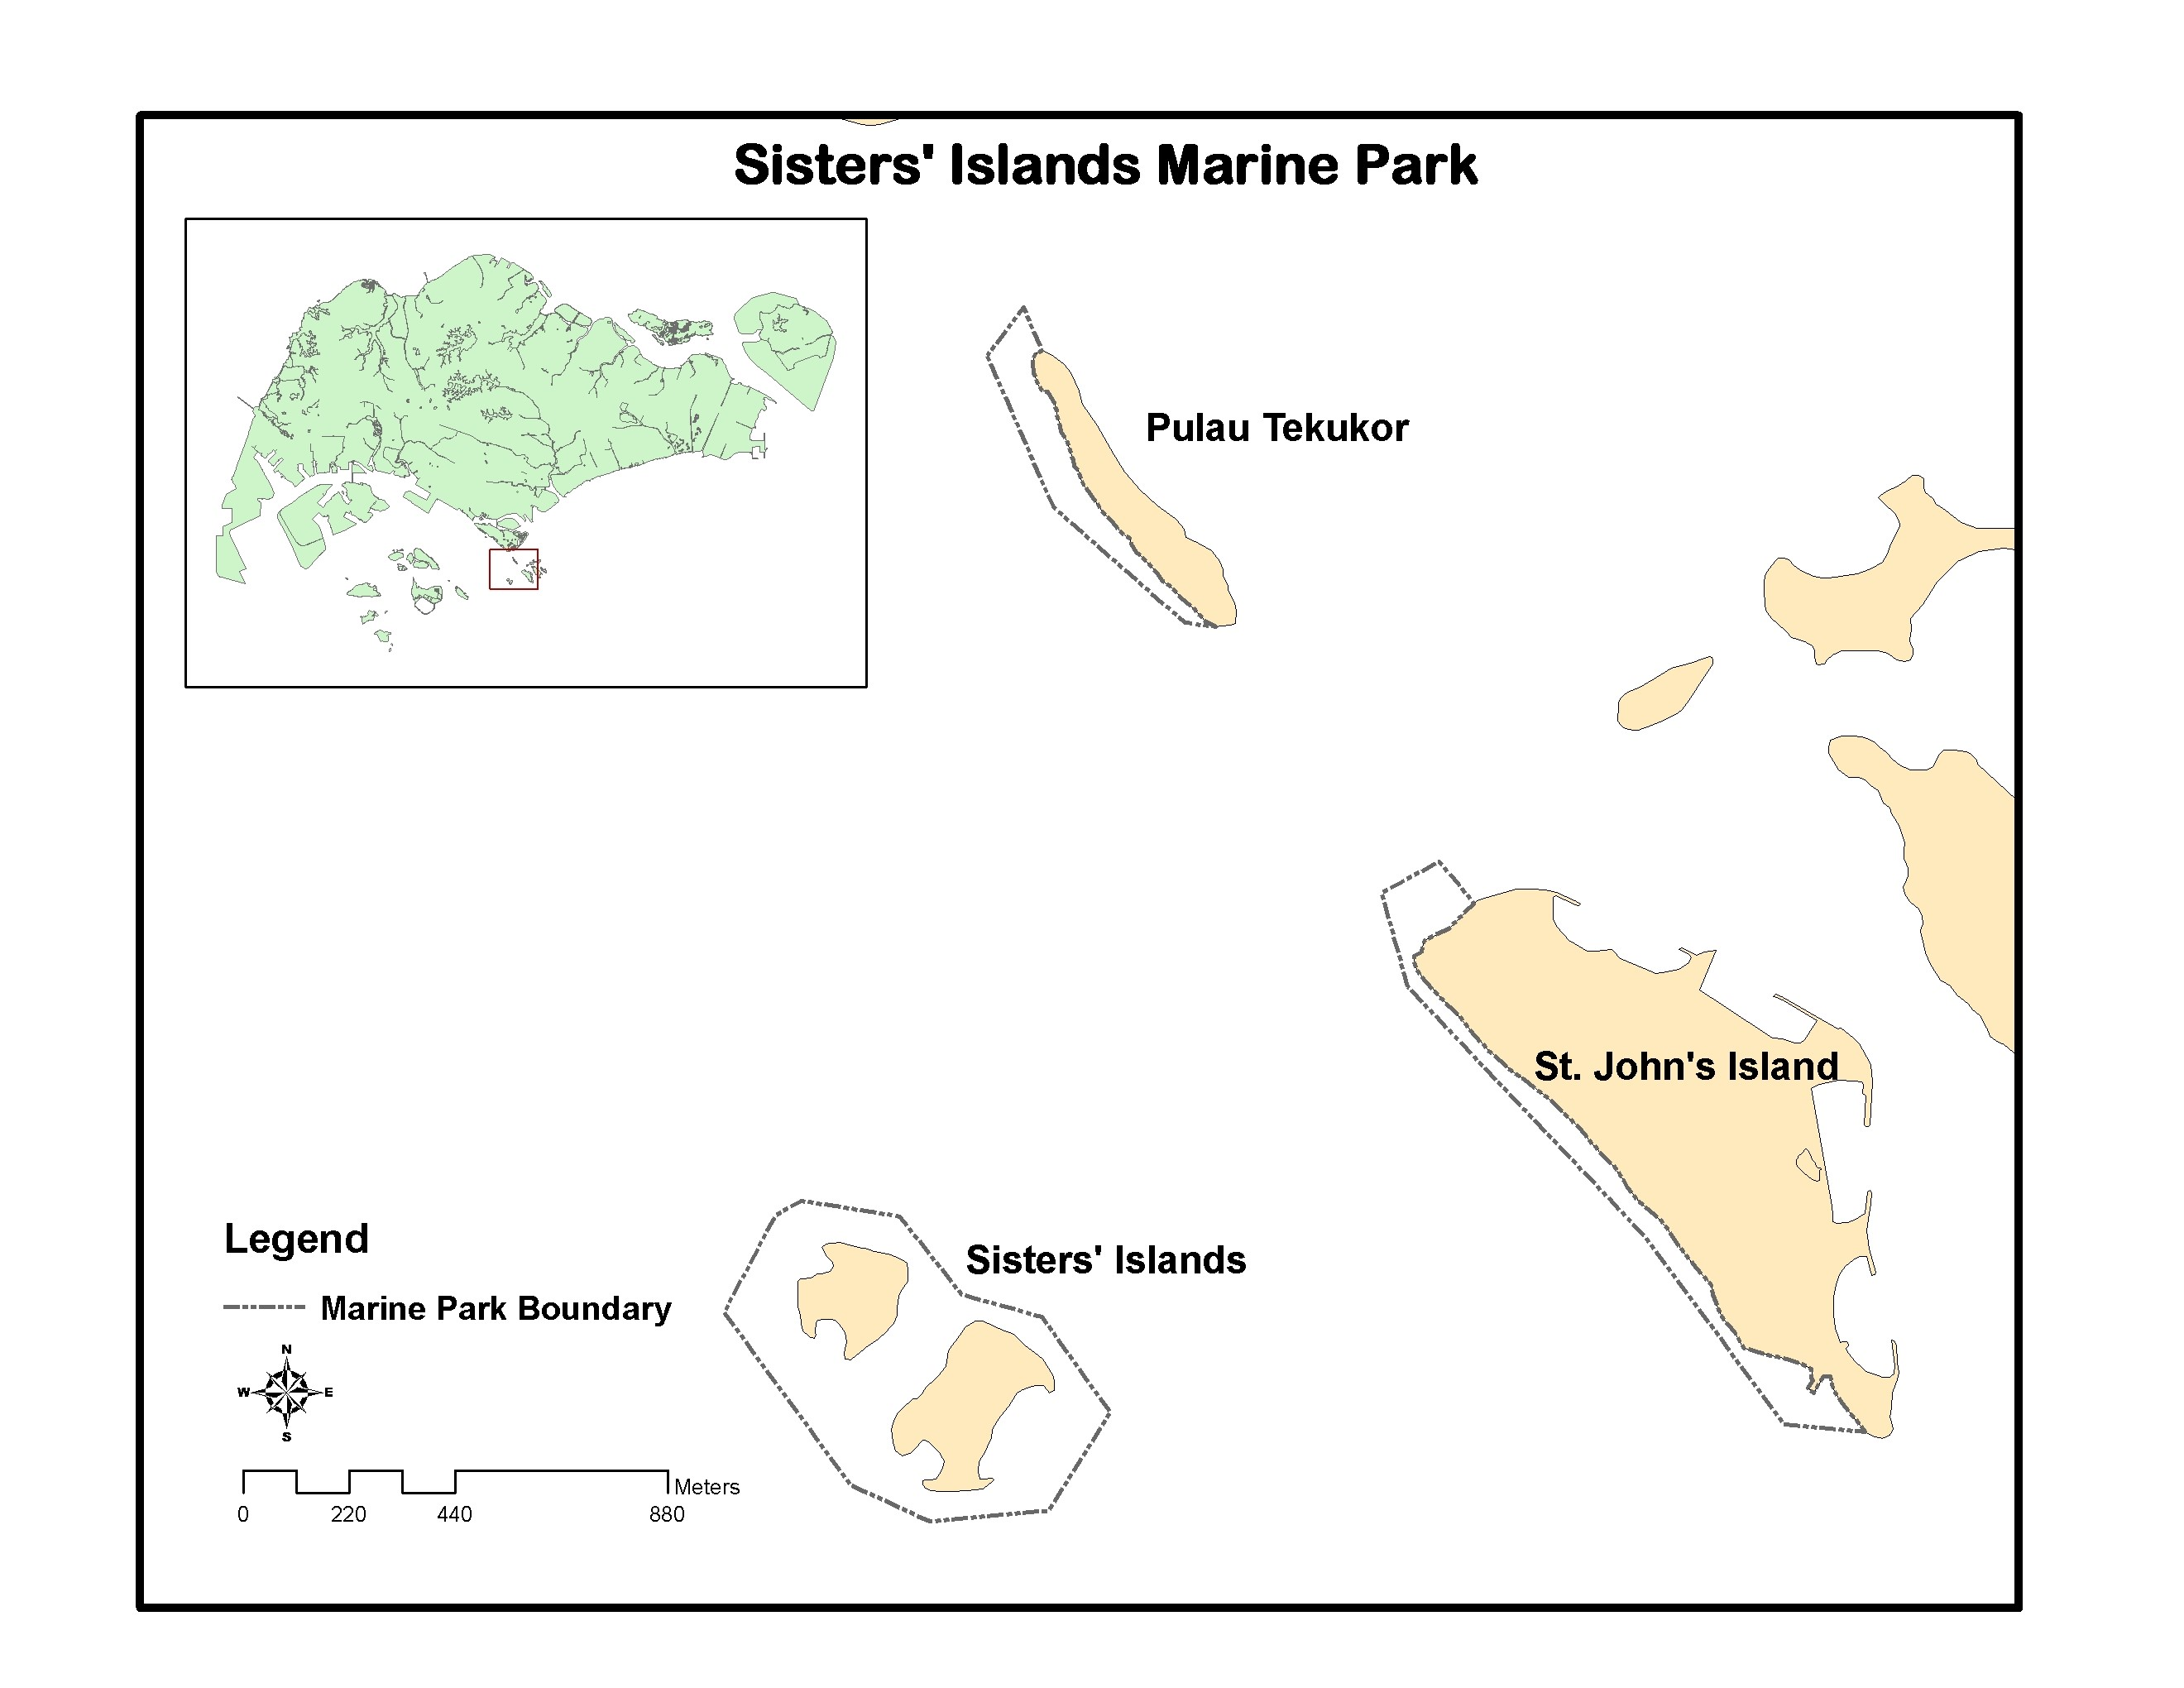 Map of Sisters' Islands Marine Park